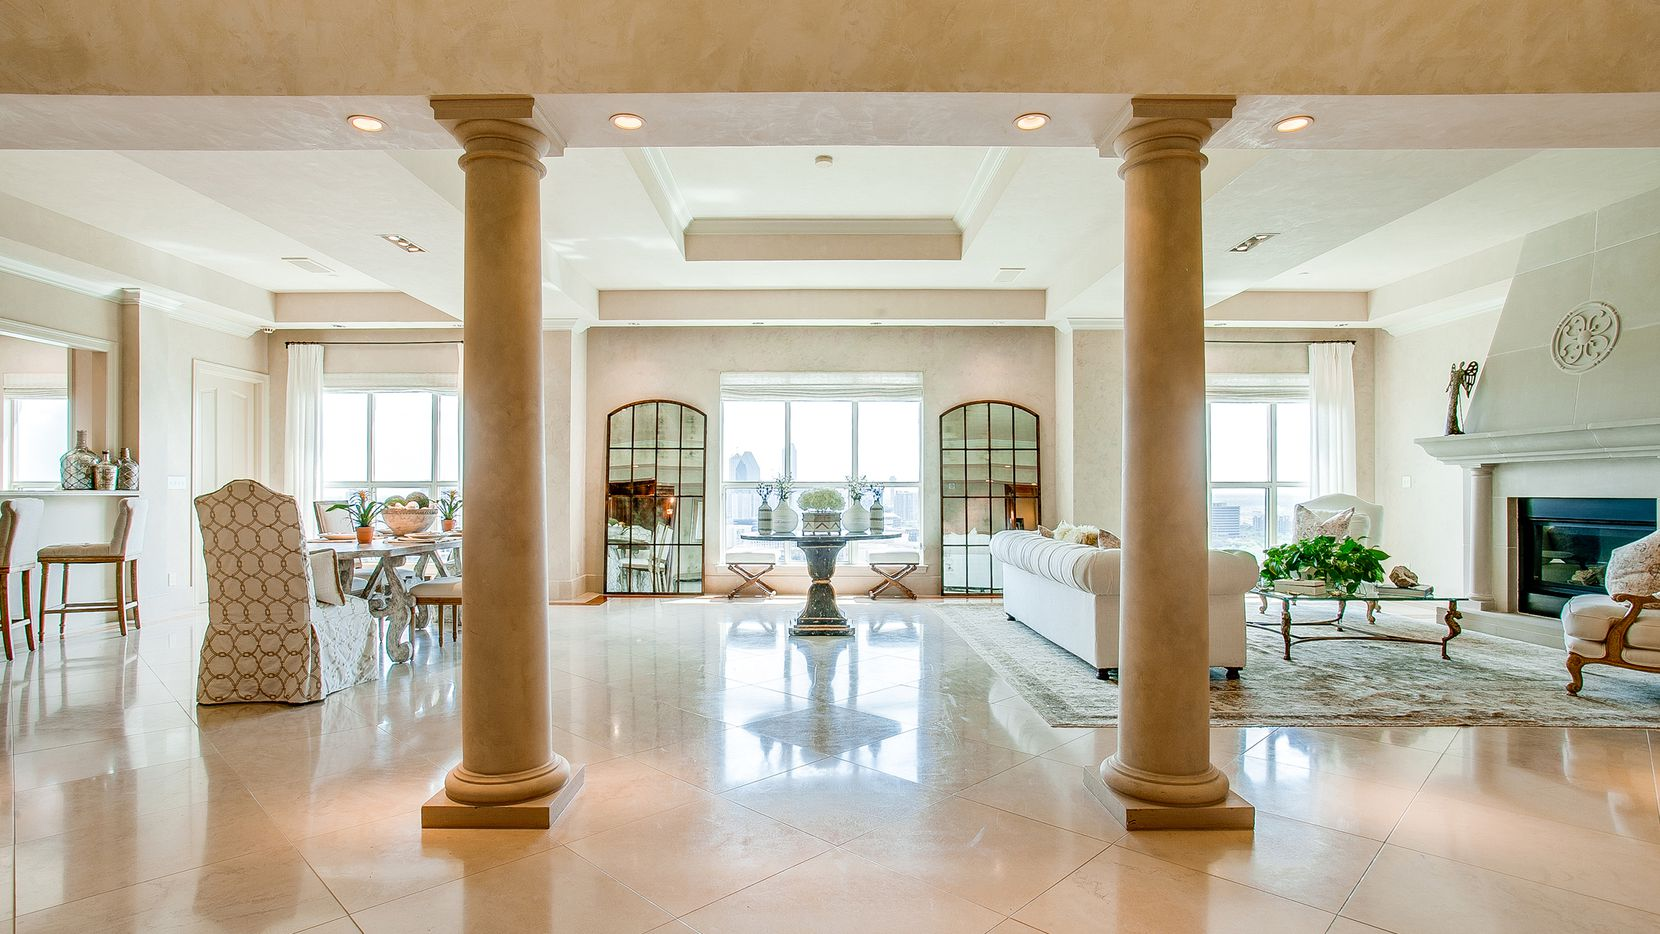 This penthouse in The Mayfair at Turtle Creek and seven others in the Oak Lawn/Uptown/Knox-Henderson area will be held open from 2 to 4 p.m. on Oct. 10.